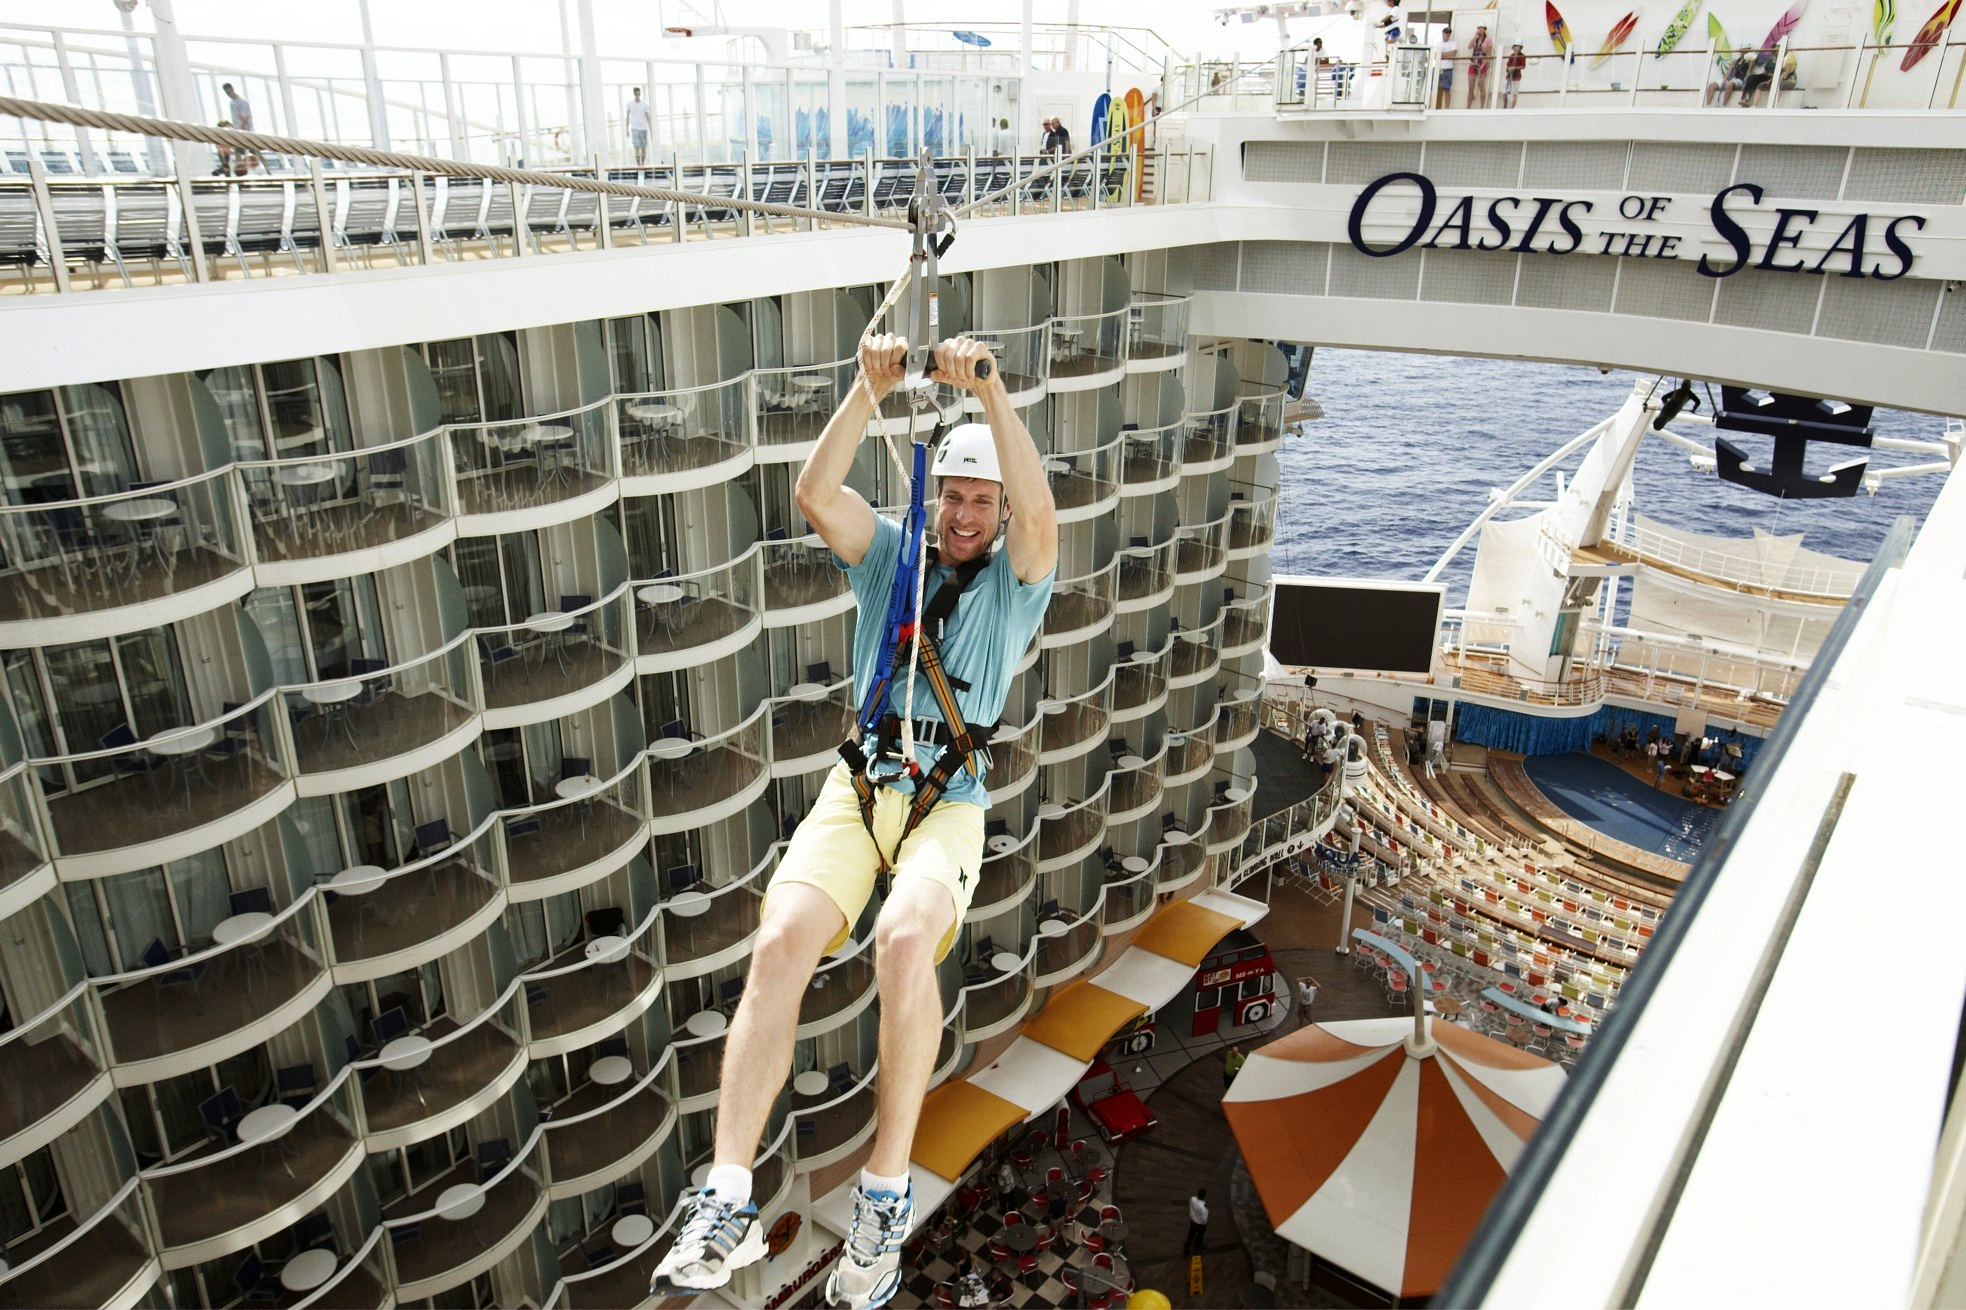 Royal Caribbean International Oasis of the Seas Exterior ZIPLINE UK 094.jpg